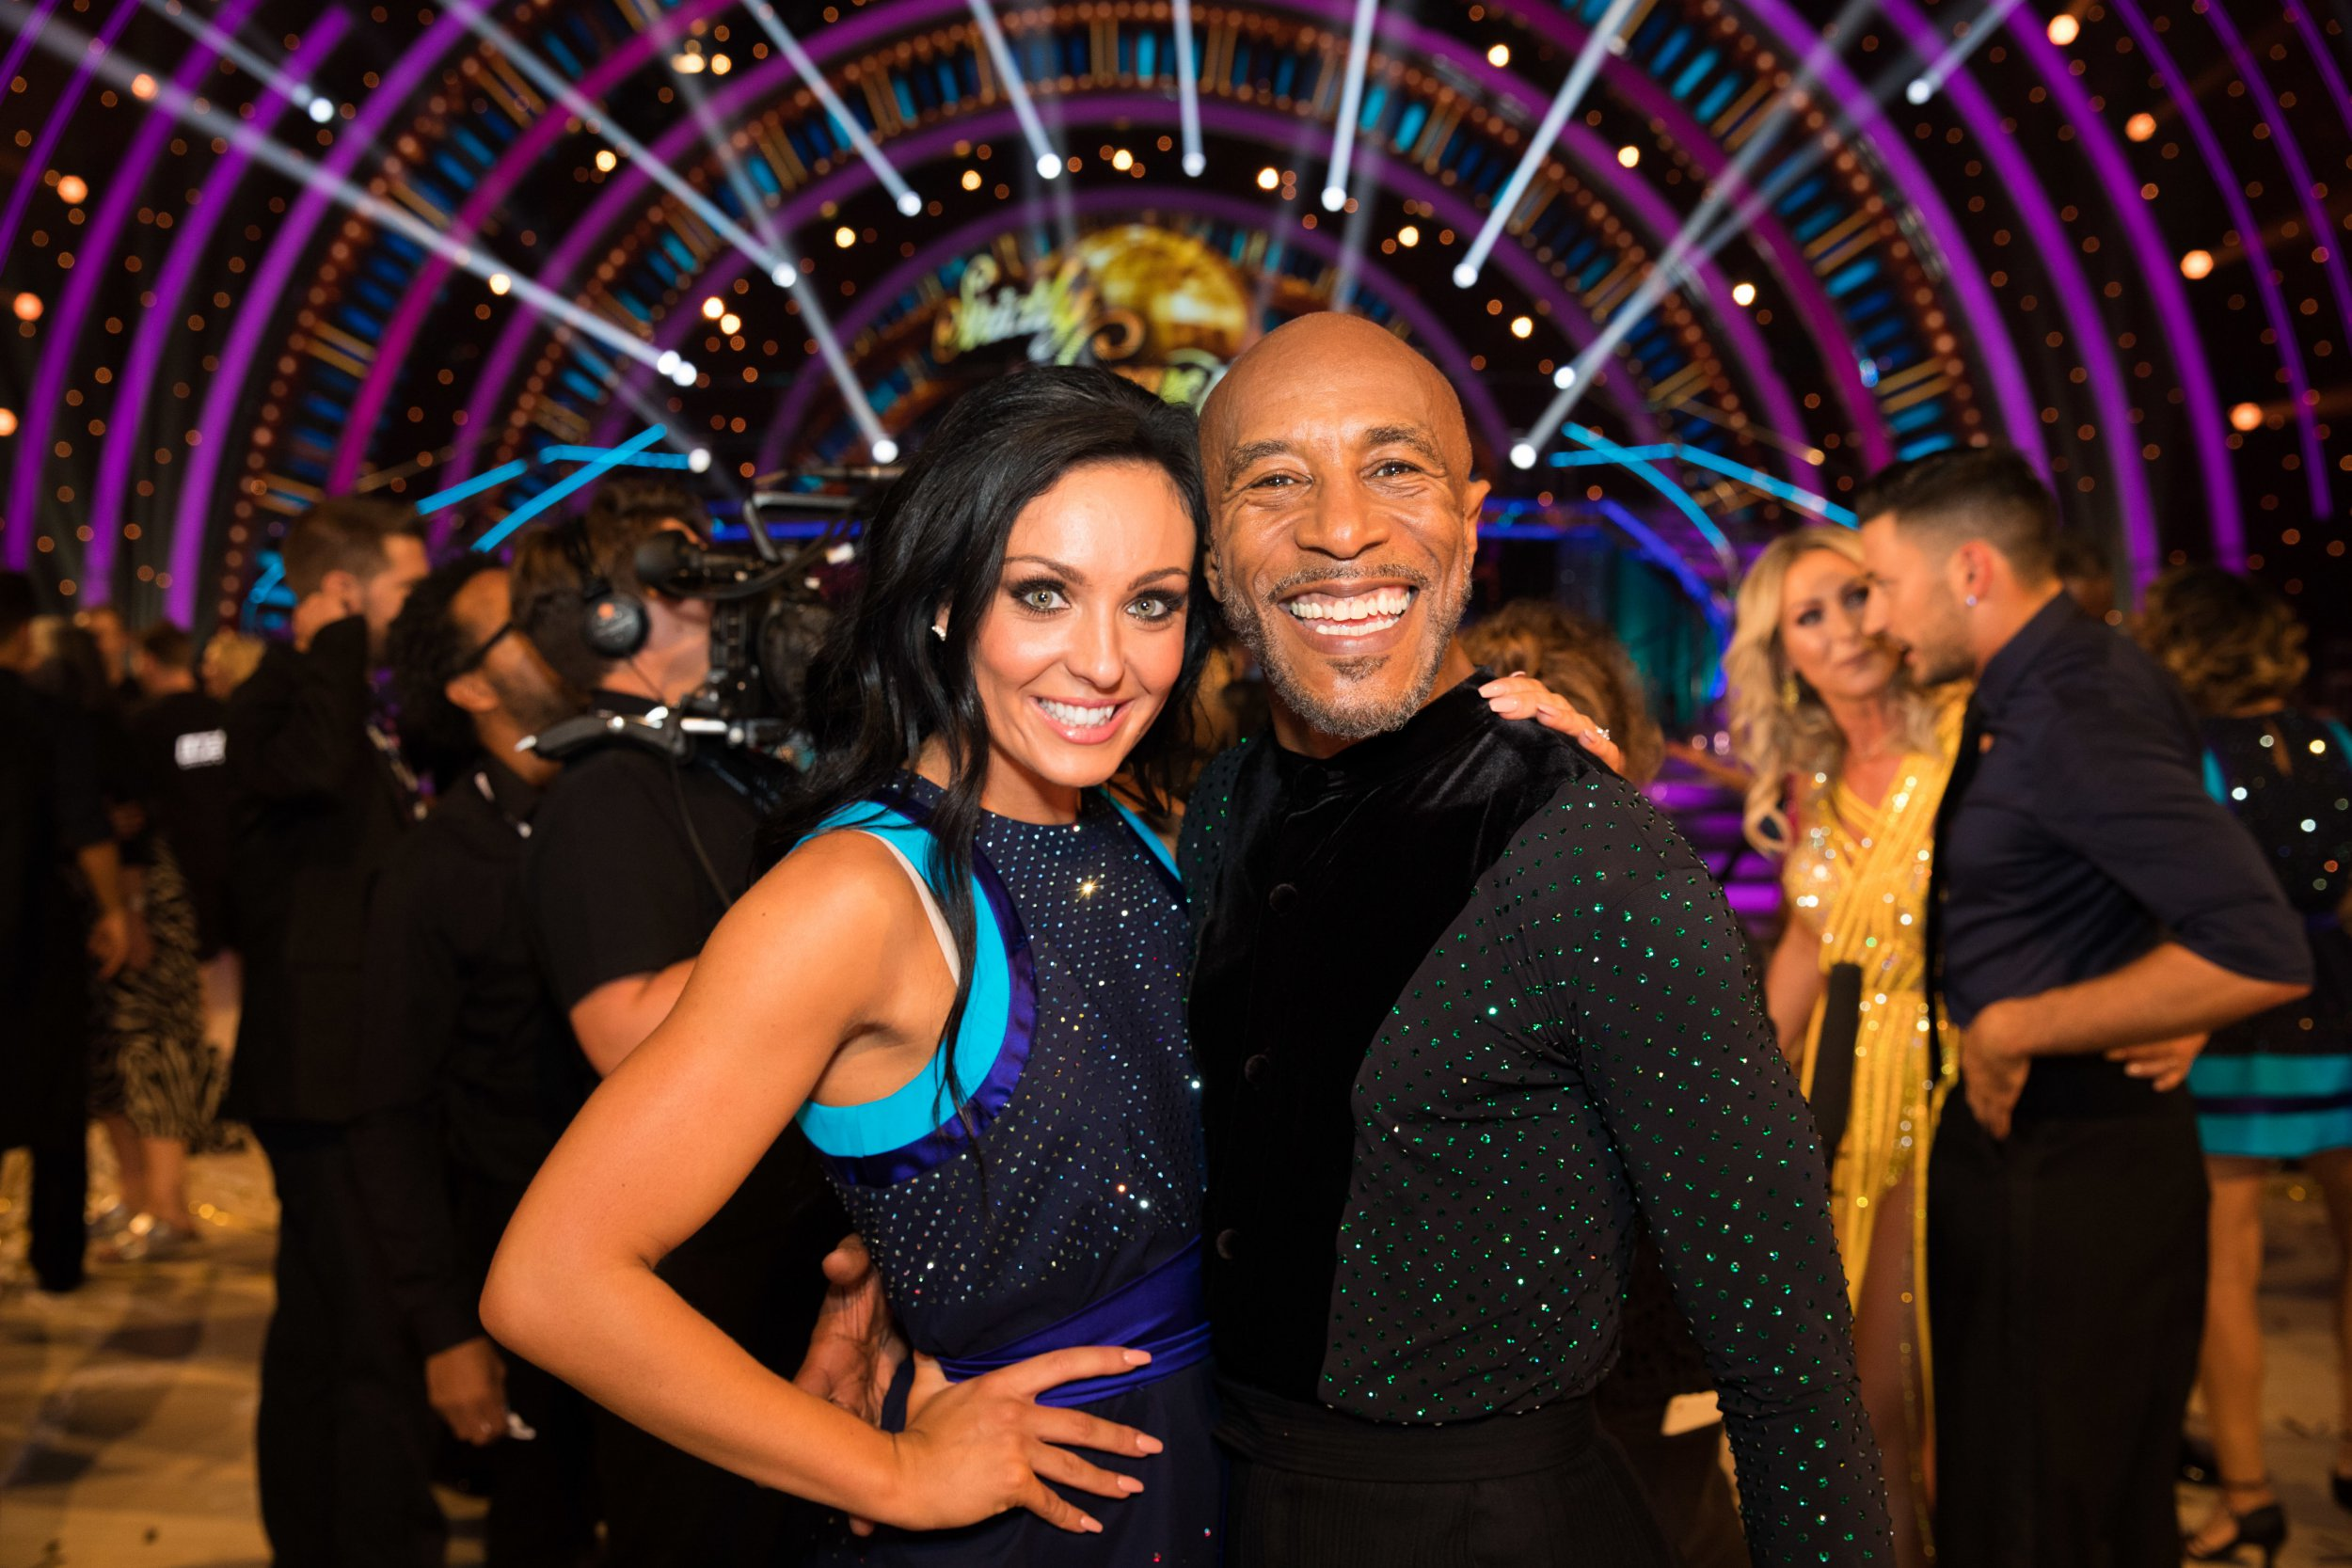 Strictly Come Dancing's Danny John-Jules forced to pull out rehearsals over injury